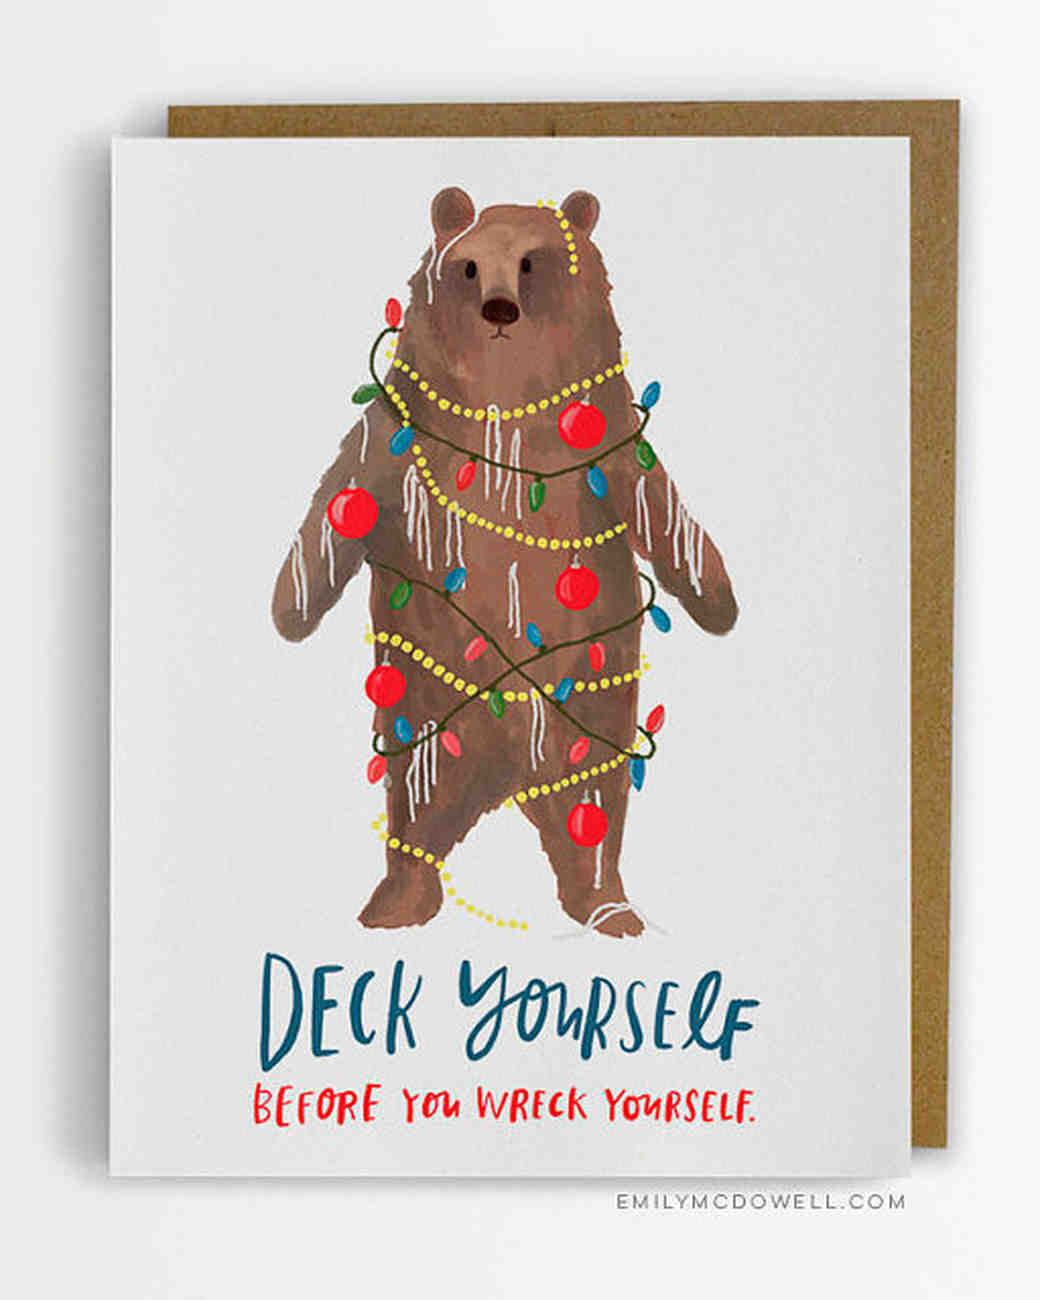 holiday-card-emily-mcdowell-studio-deck-yourself-1215.jpg